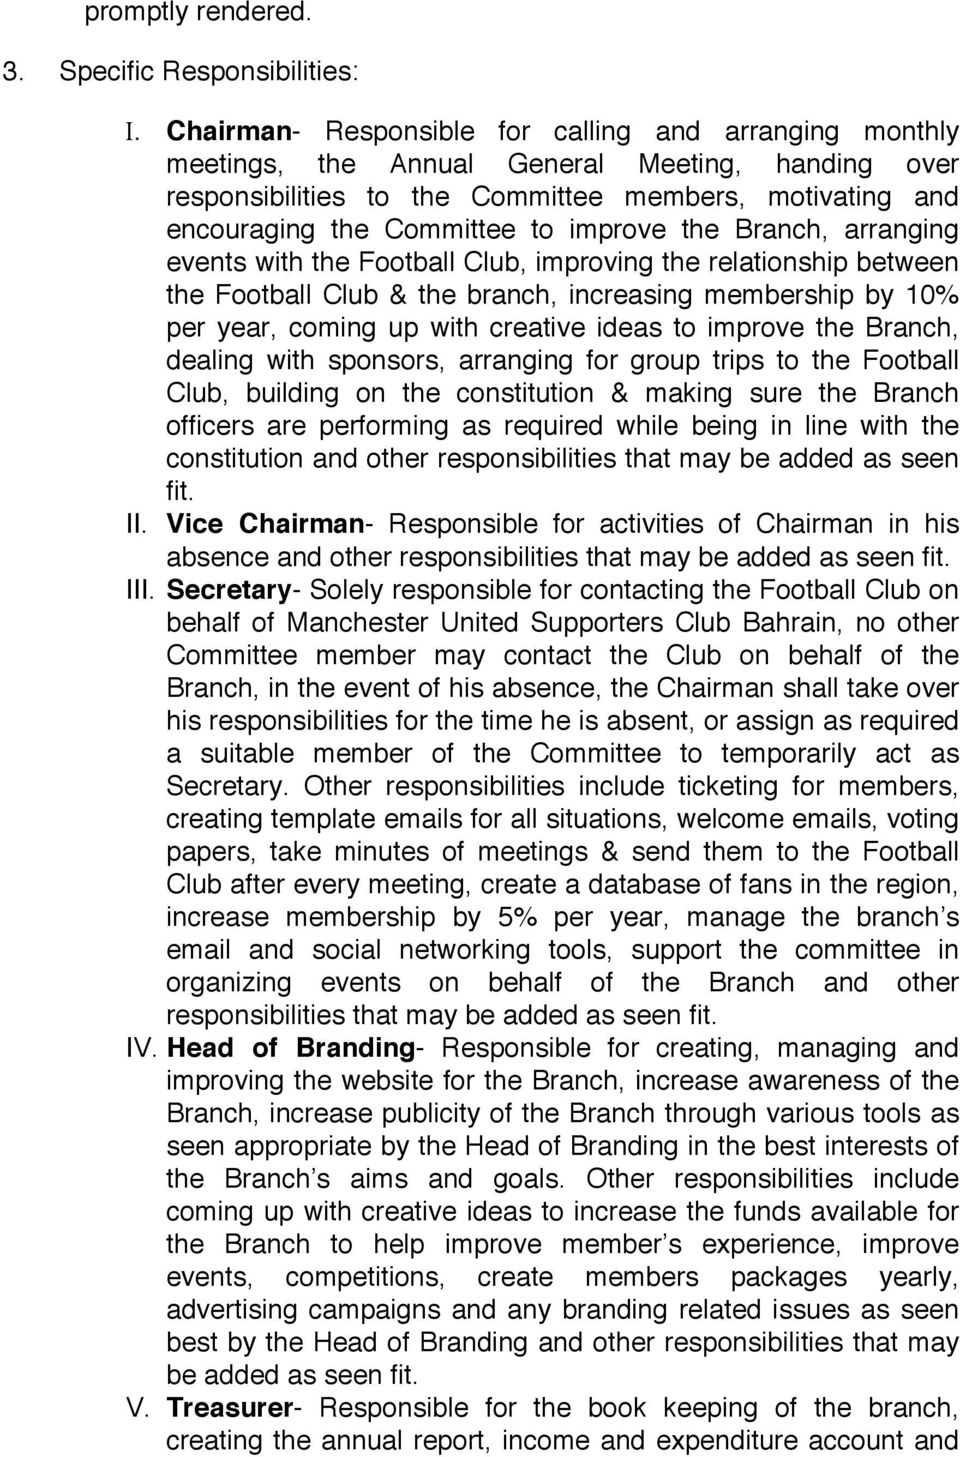 improve the Branch, arranging events with the Football Club, improving the relationship between the Football Club & the branch, increasing membership by 10% per year, coming up with creative ideas to